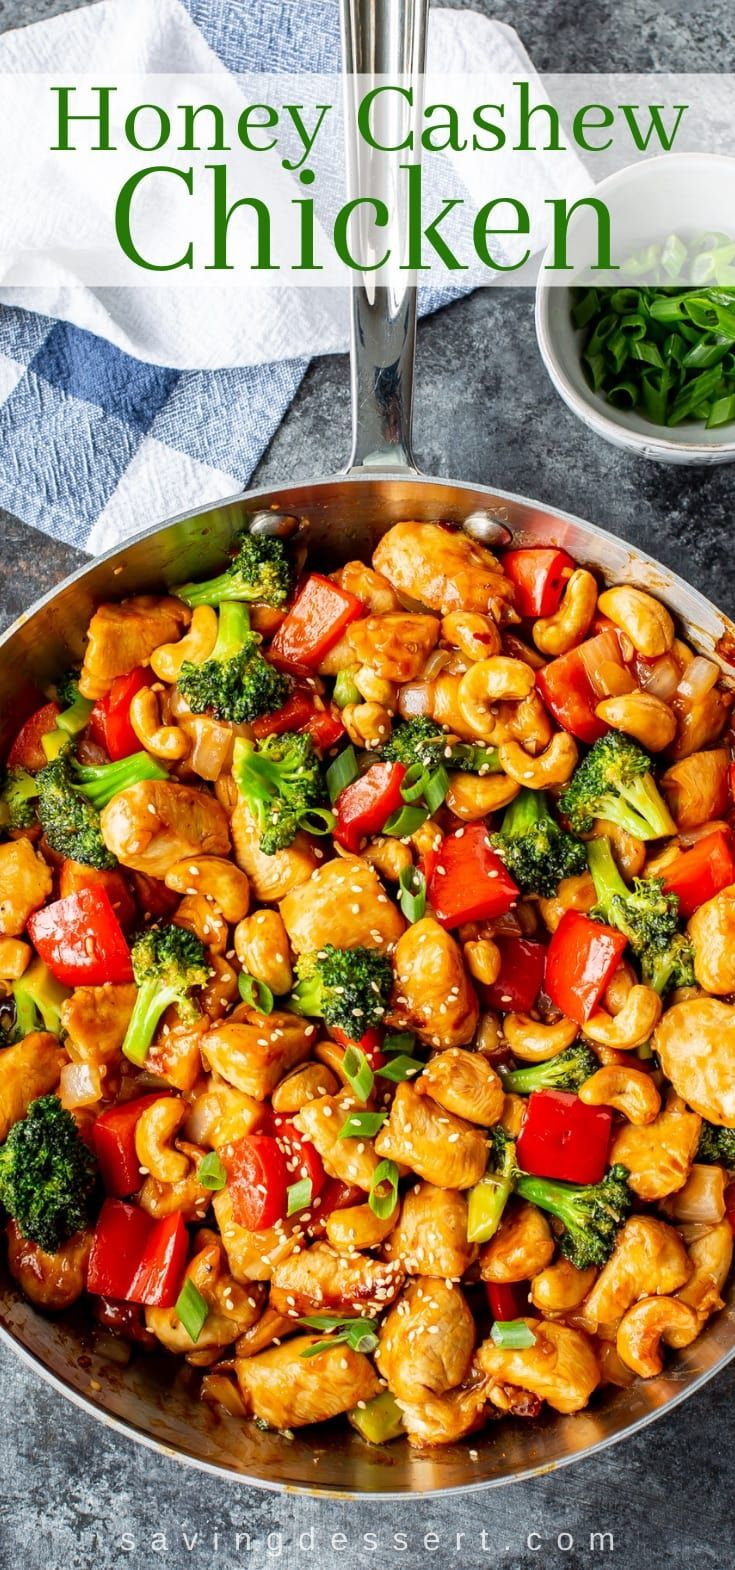 Honey Cashew Chicken - Saving Room for Dessert